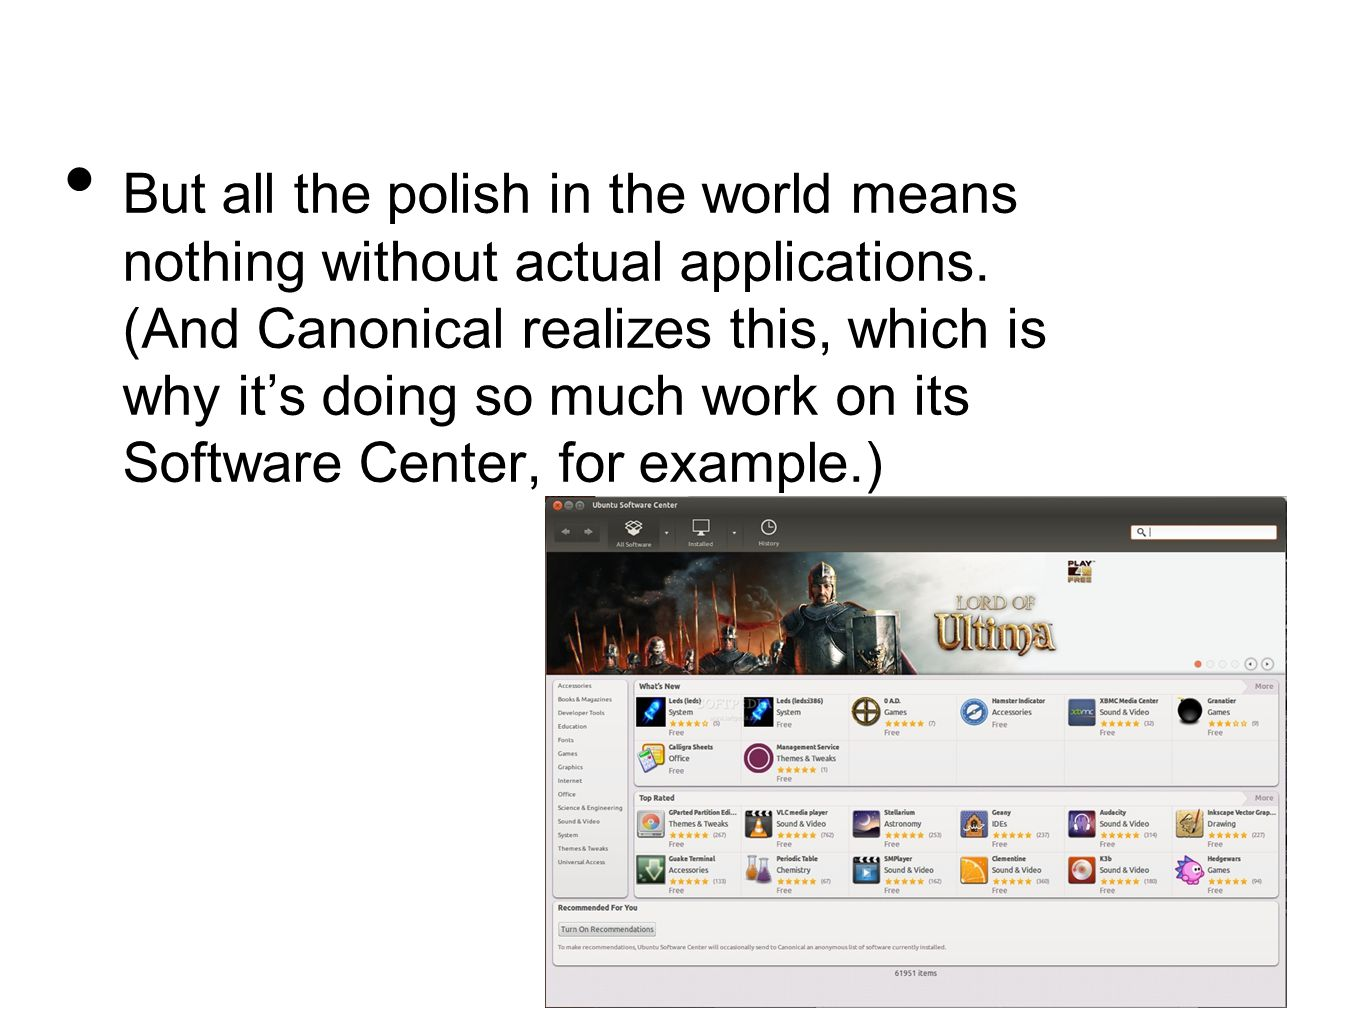 But all the polish in the world means nothing without actual applications. (And Canonical realizes this, which is why it's doing so much work on its S